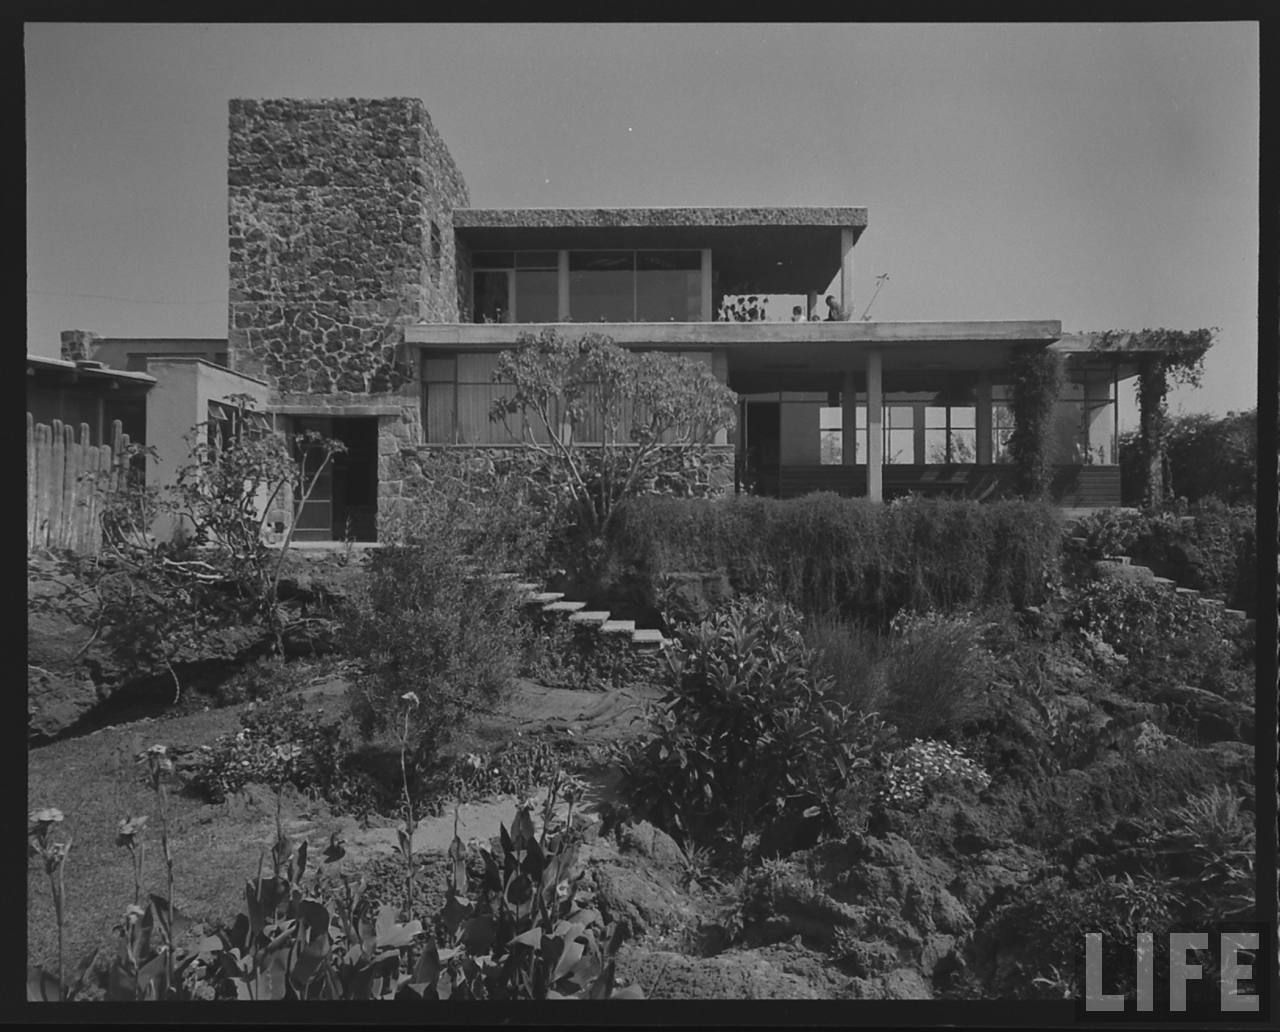 MAX CETTO ARCHITECTURE CASA CETTO 1951 51 1950S MEXICO MEXICO CITY ...